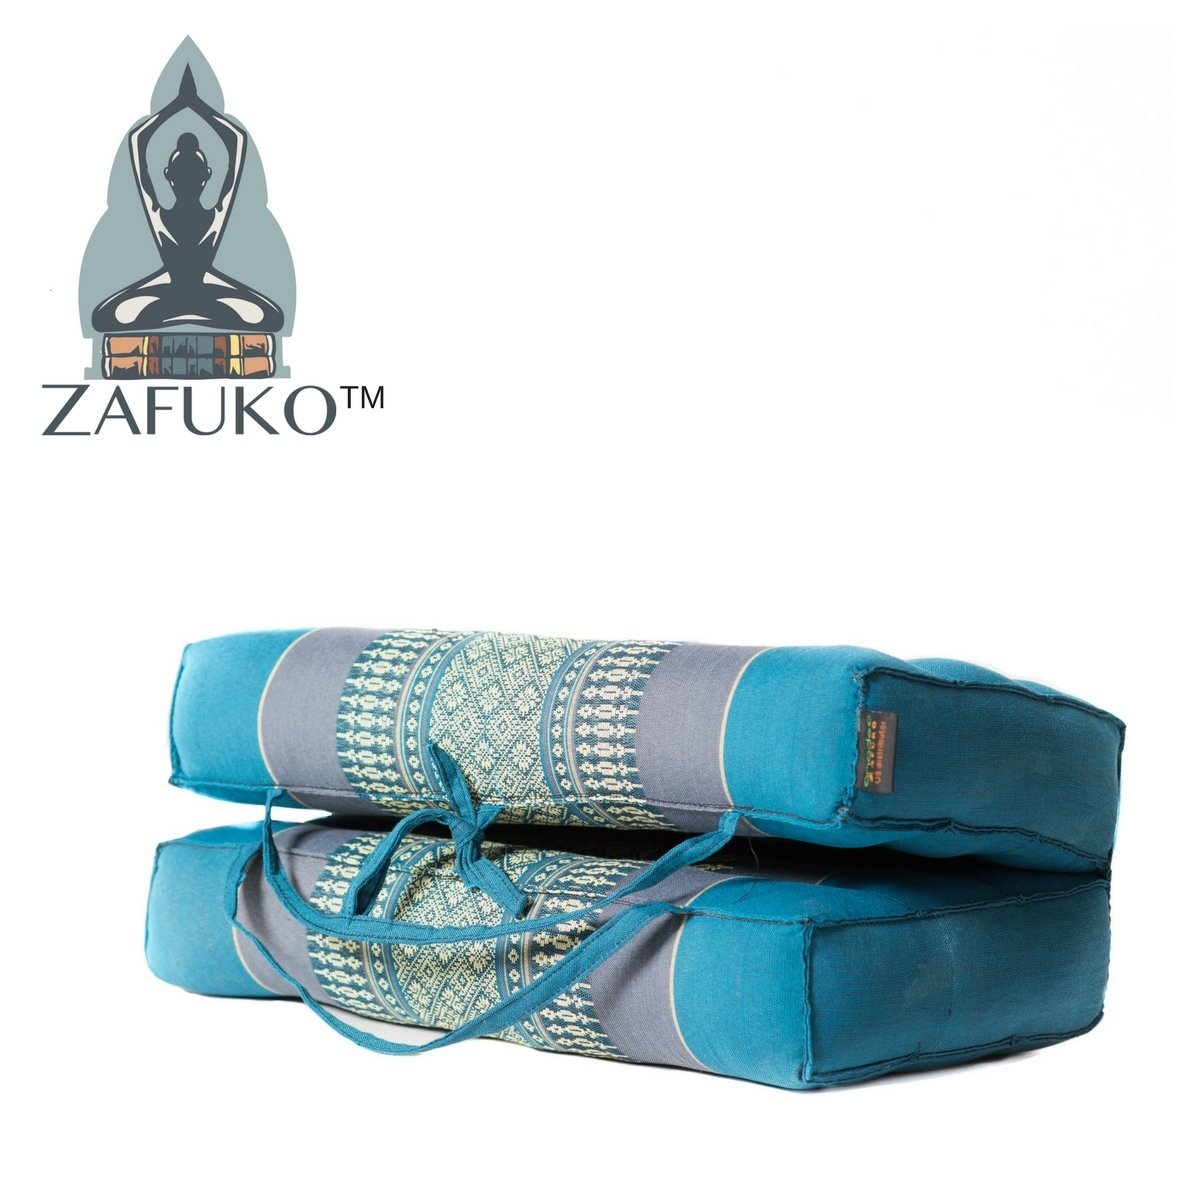 Zafuko Foldable Yoga, Meditation, Pilates Cushion